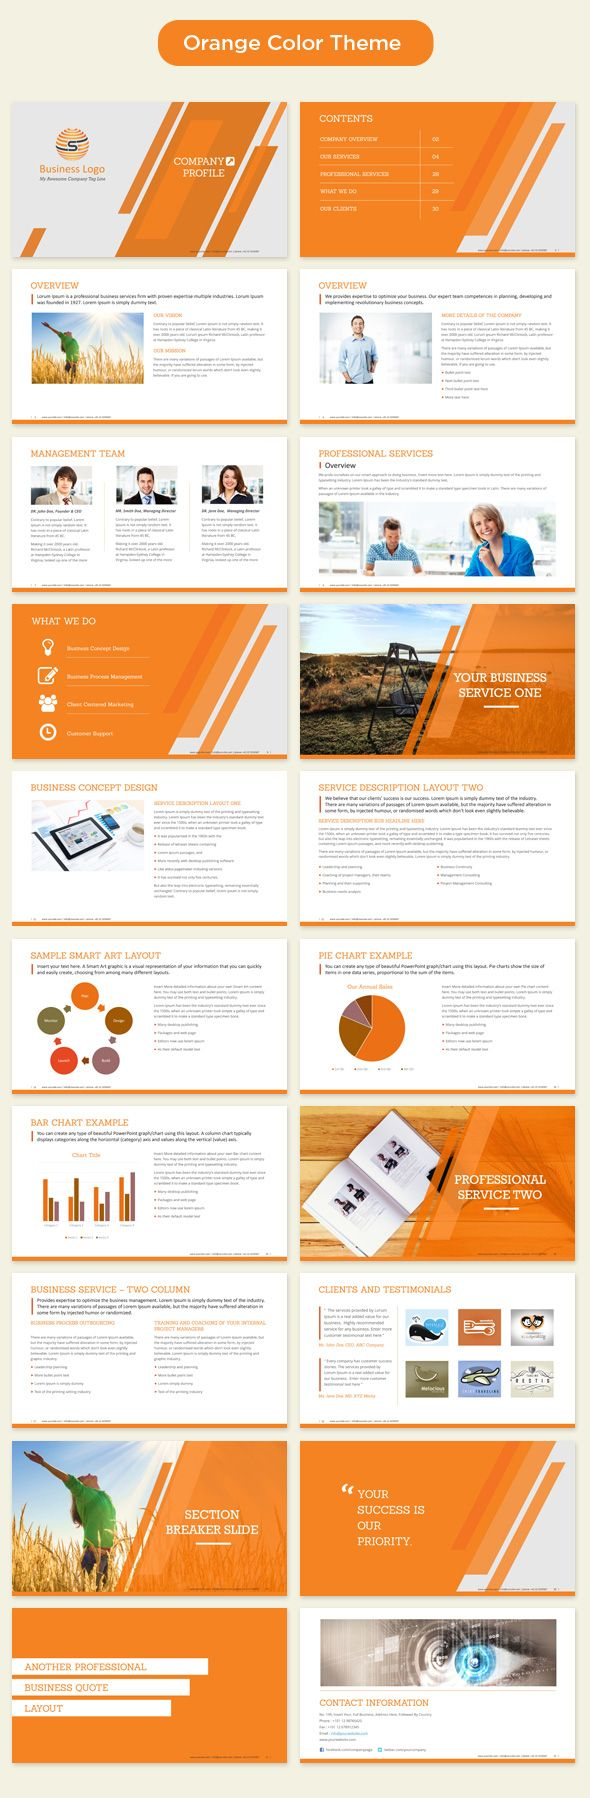 Example Of Company Profile Template Fascinating Company Profile Template Powerpointtemplate Is Available In 4 Uni .